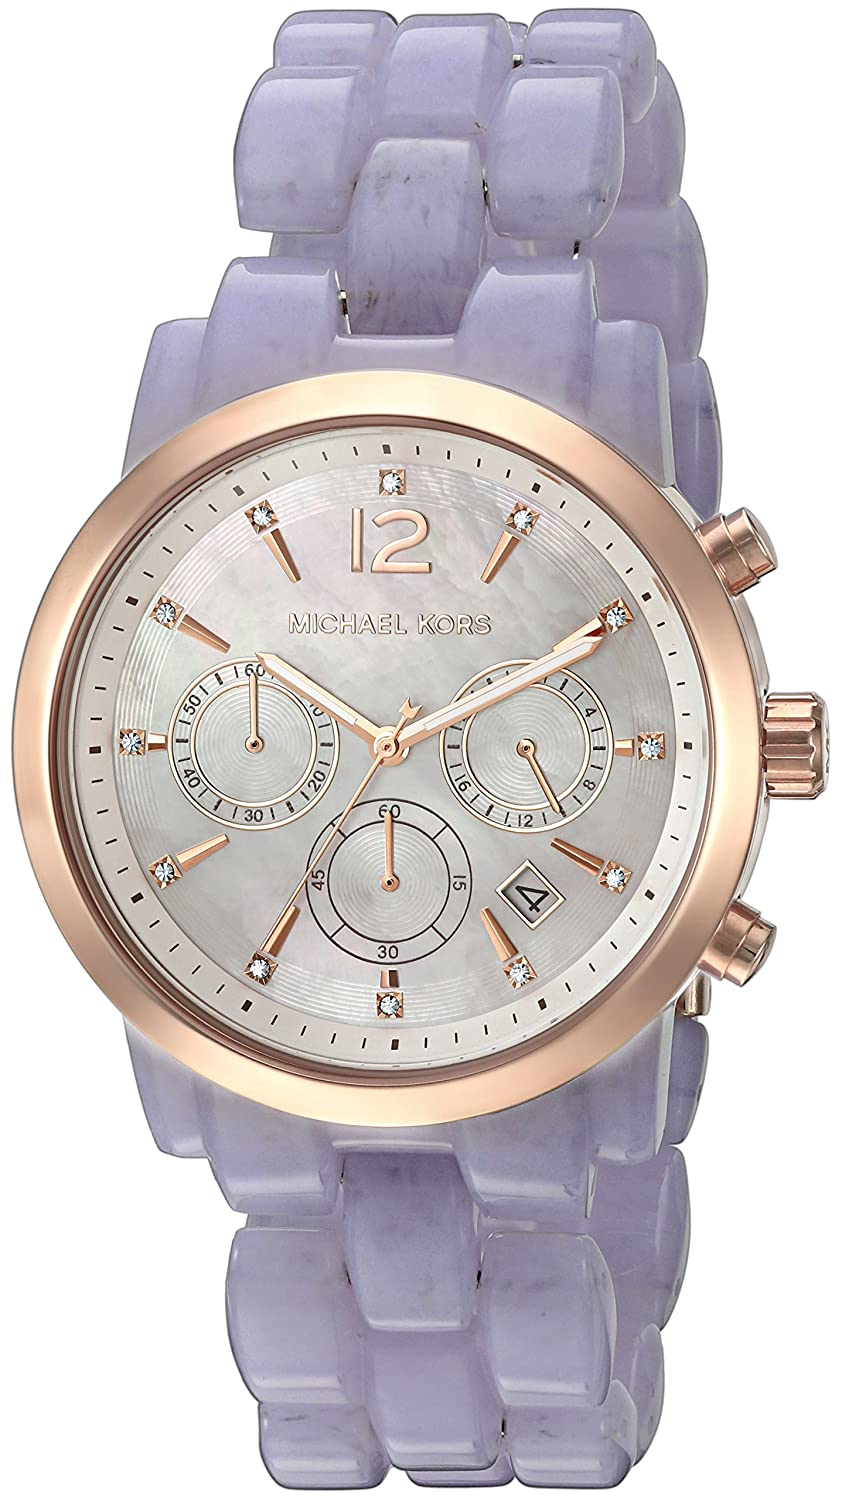 b5dcb39c0478 Amazon.com  Michael Kors Women s Audrina Acetate and Rose Gold-Tone Watch  MK6312  Michael Kors  Watches